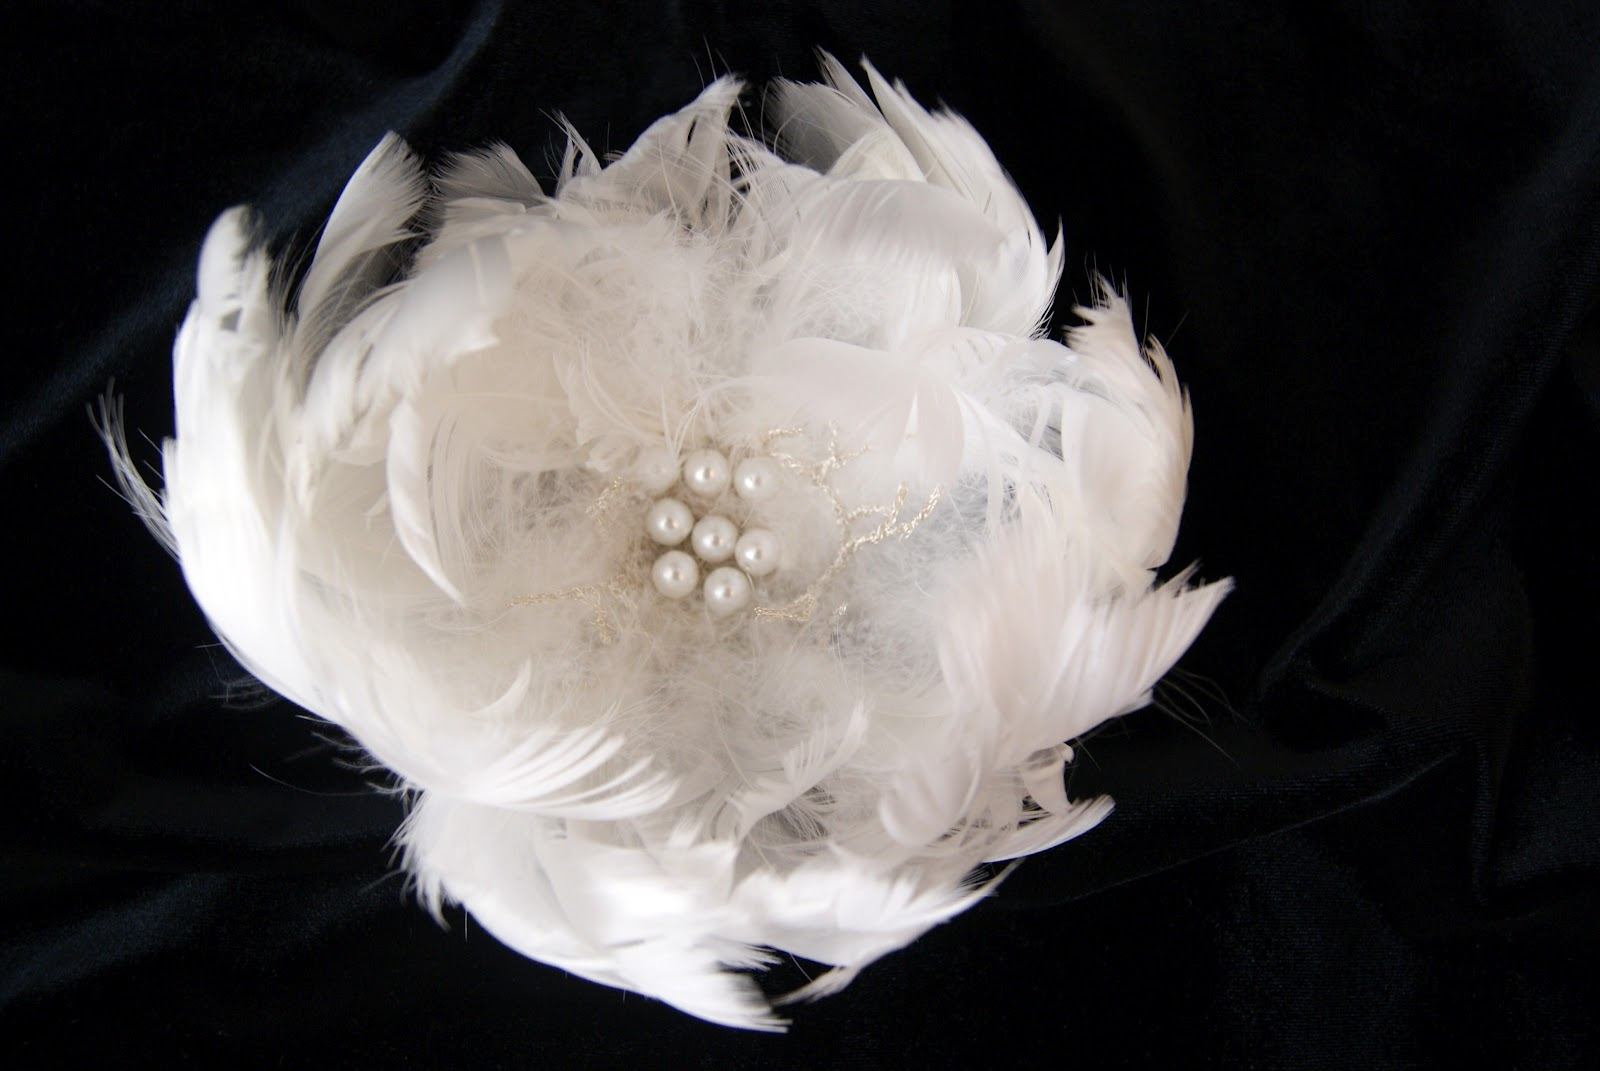 Handmade bridal and wedding jewelry by vintage touch handmade each crochet piece in this brooch is unique because its impossible to reproduce another one that is exactly identical mightylinksfo